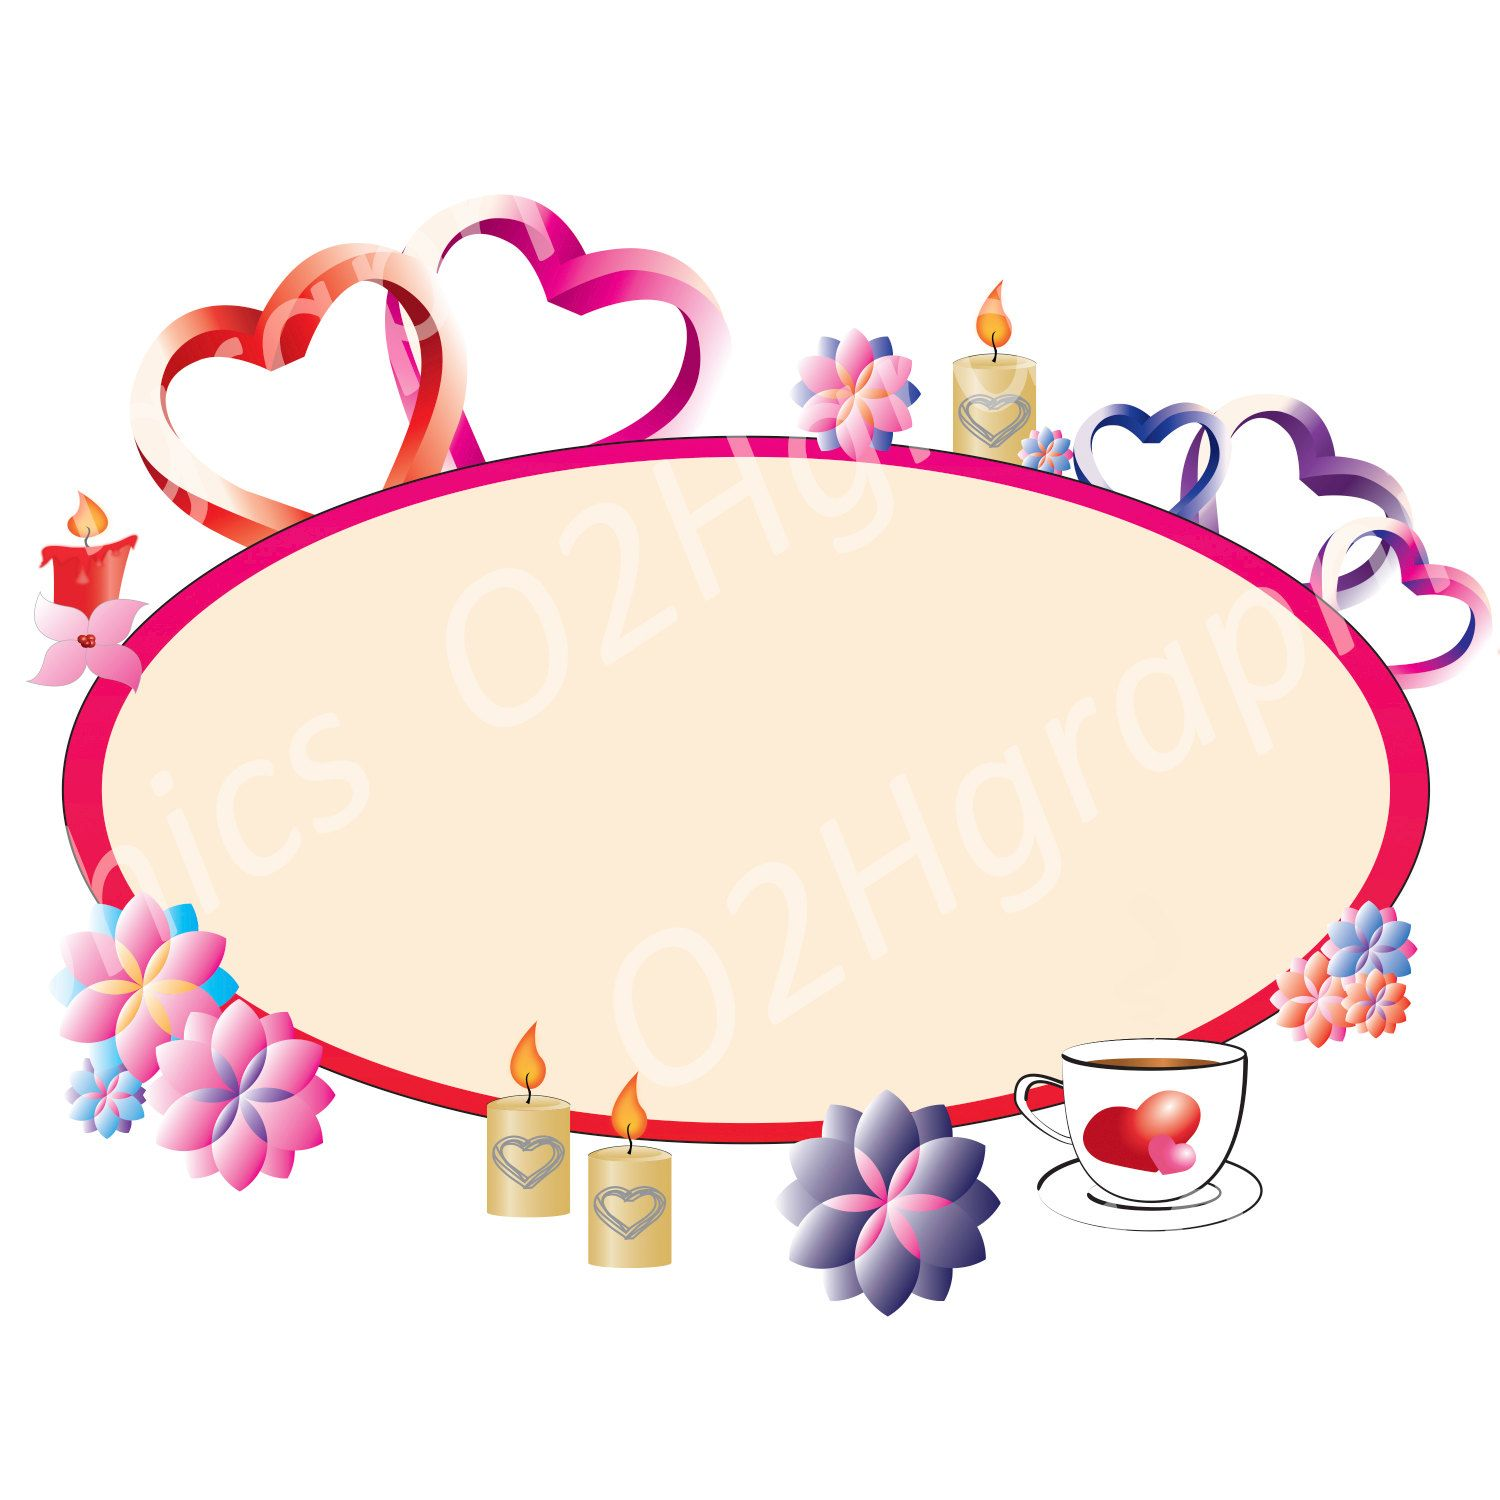 Cards clipart graphic. Valentine s day card